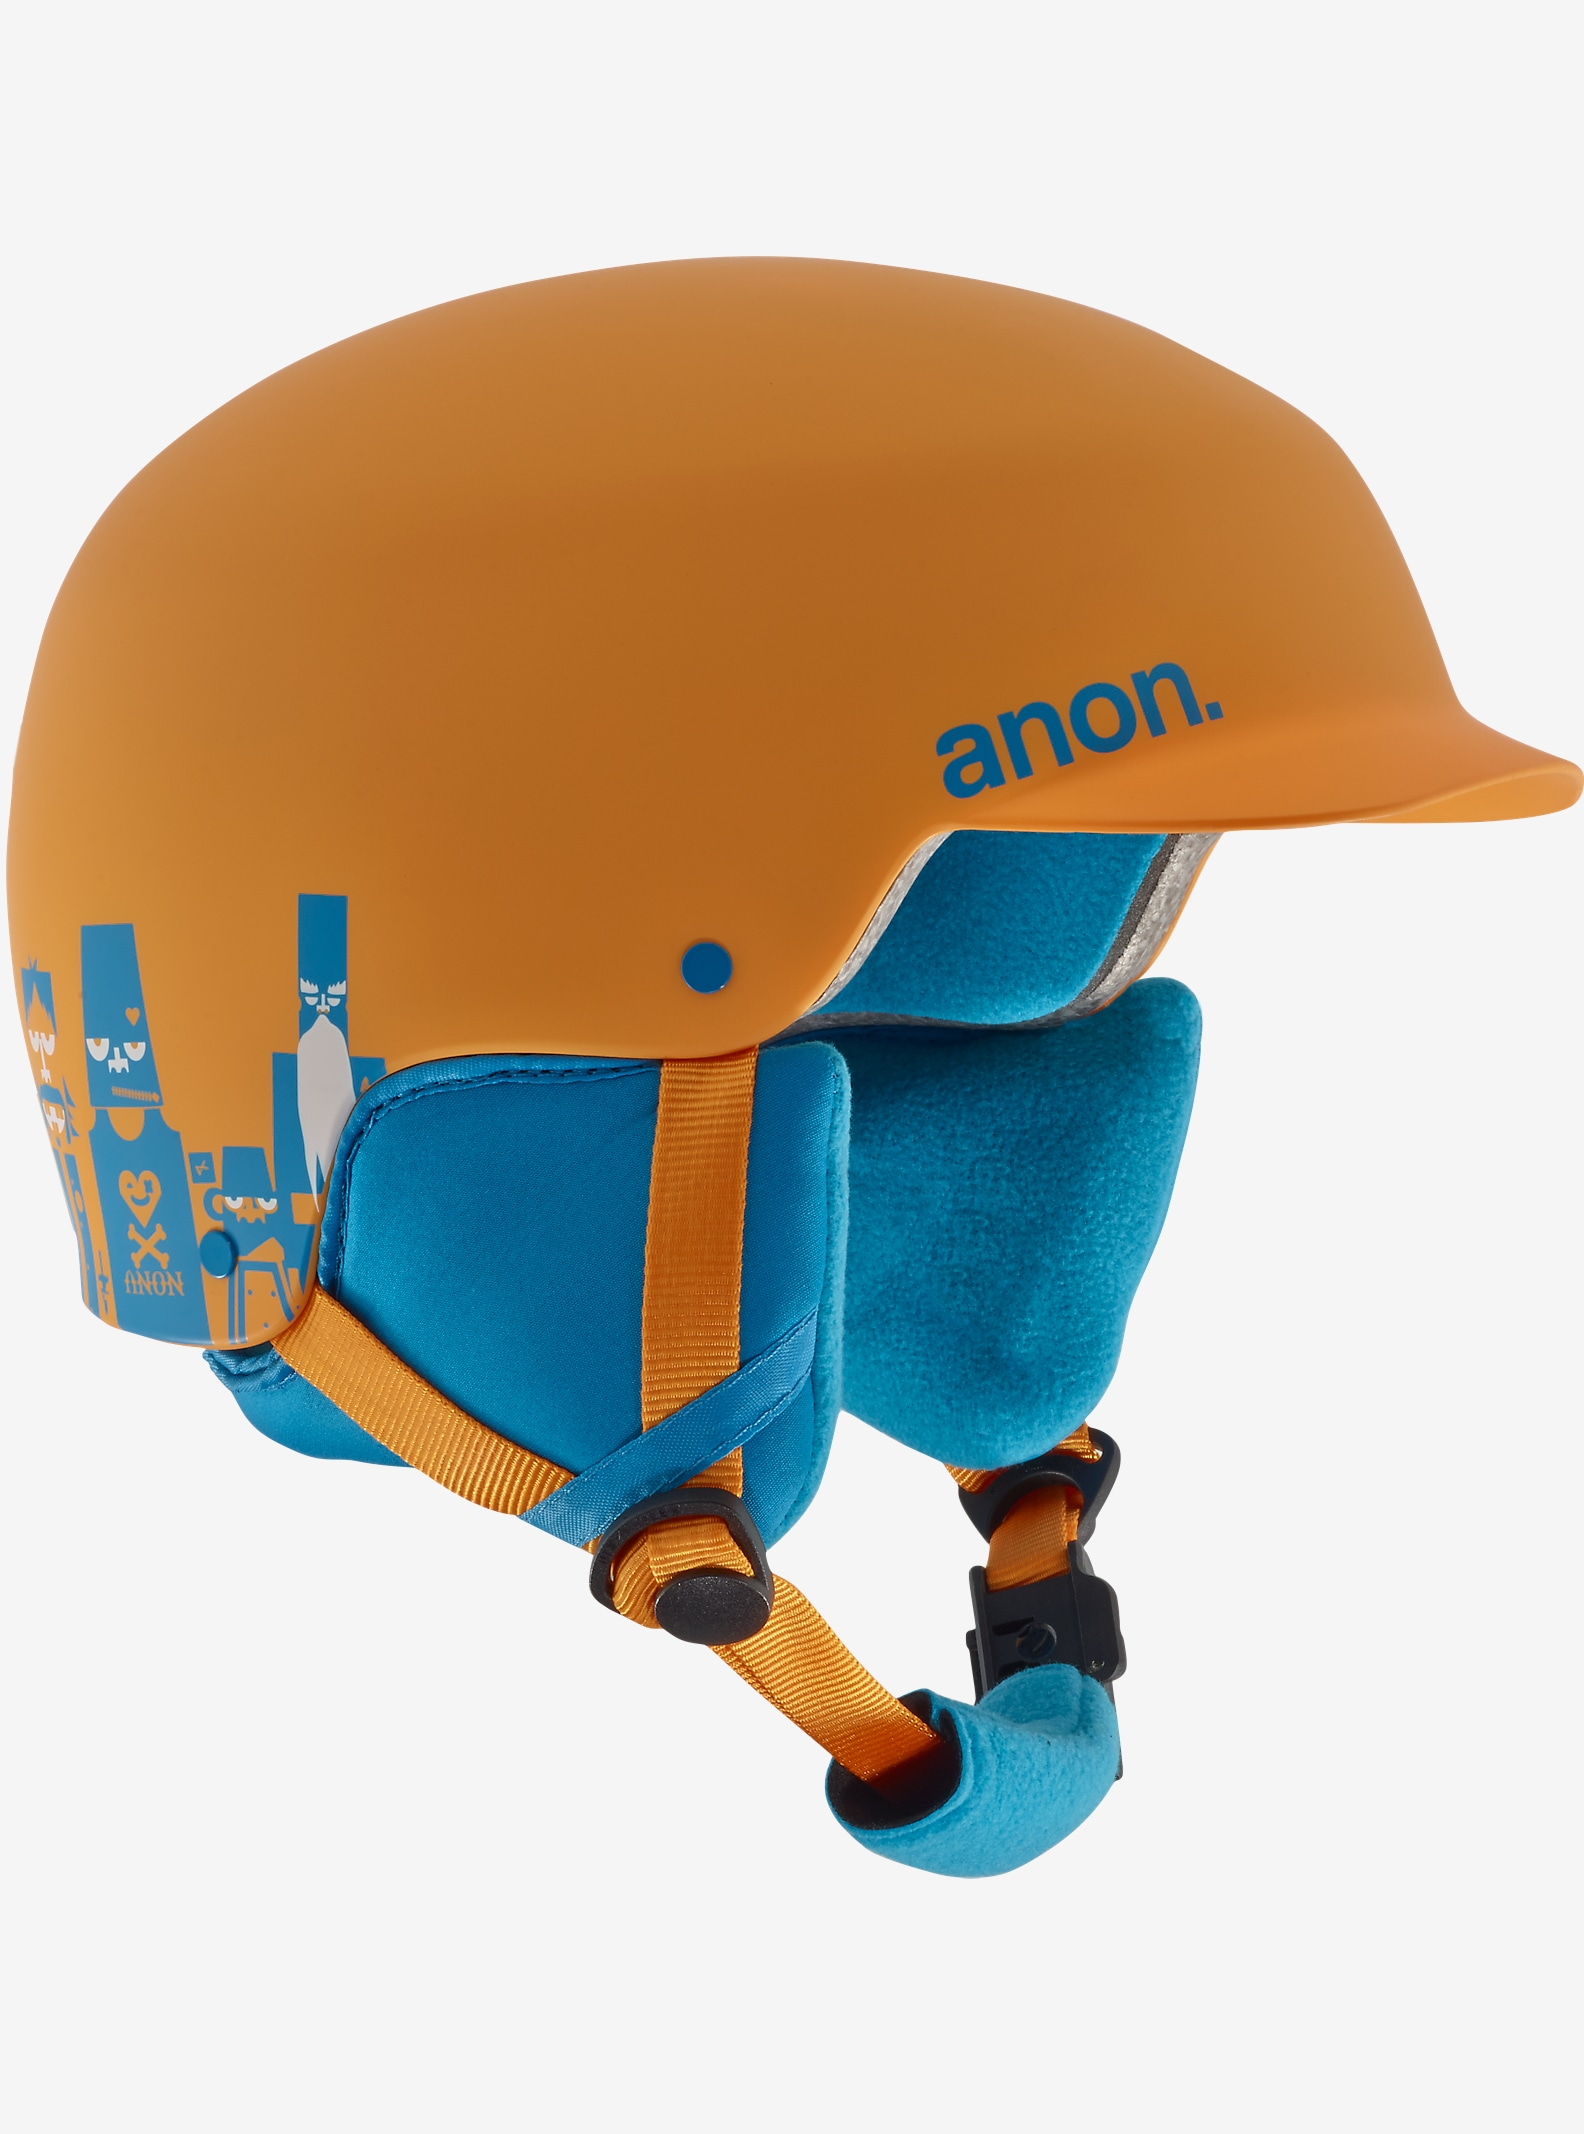 anon. Boys' Scout Helmet shown in Motley Orange